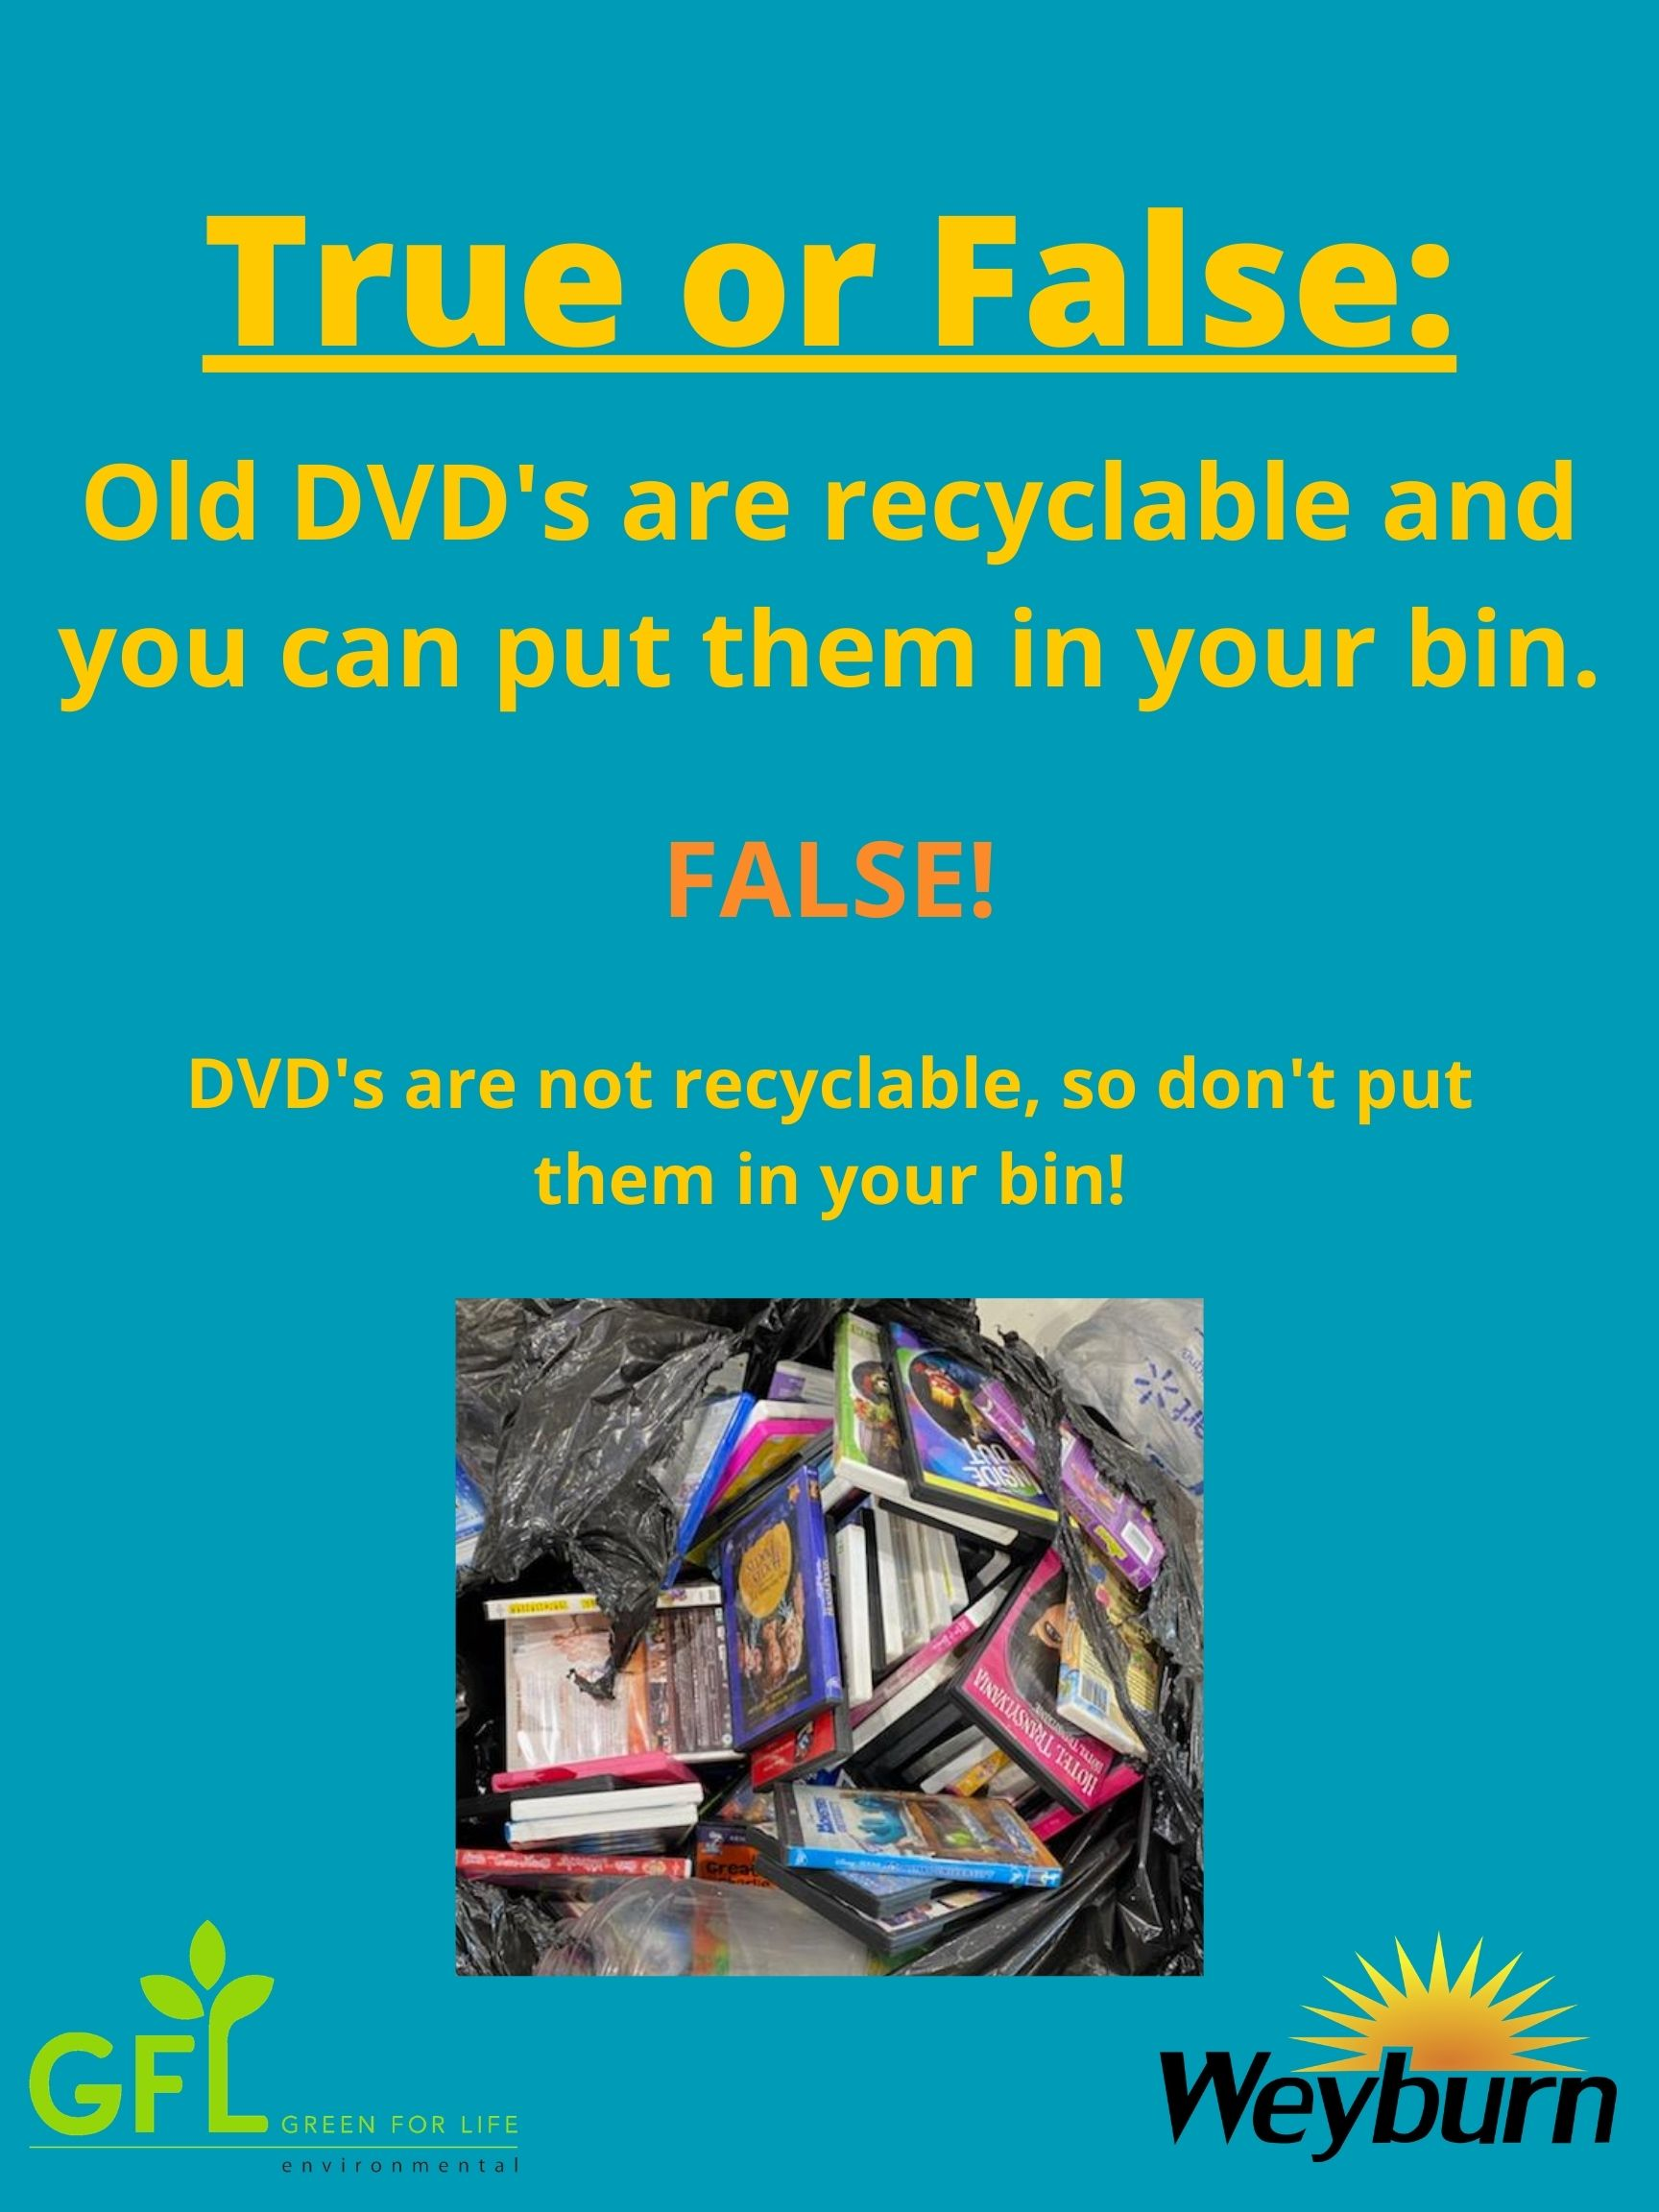 True-or-False_DVDs-GFL